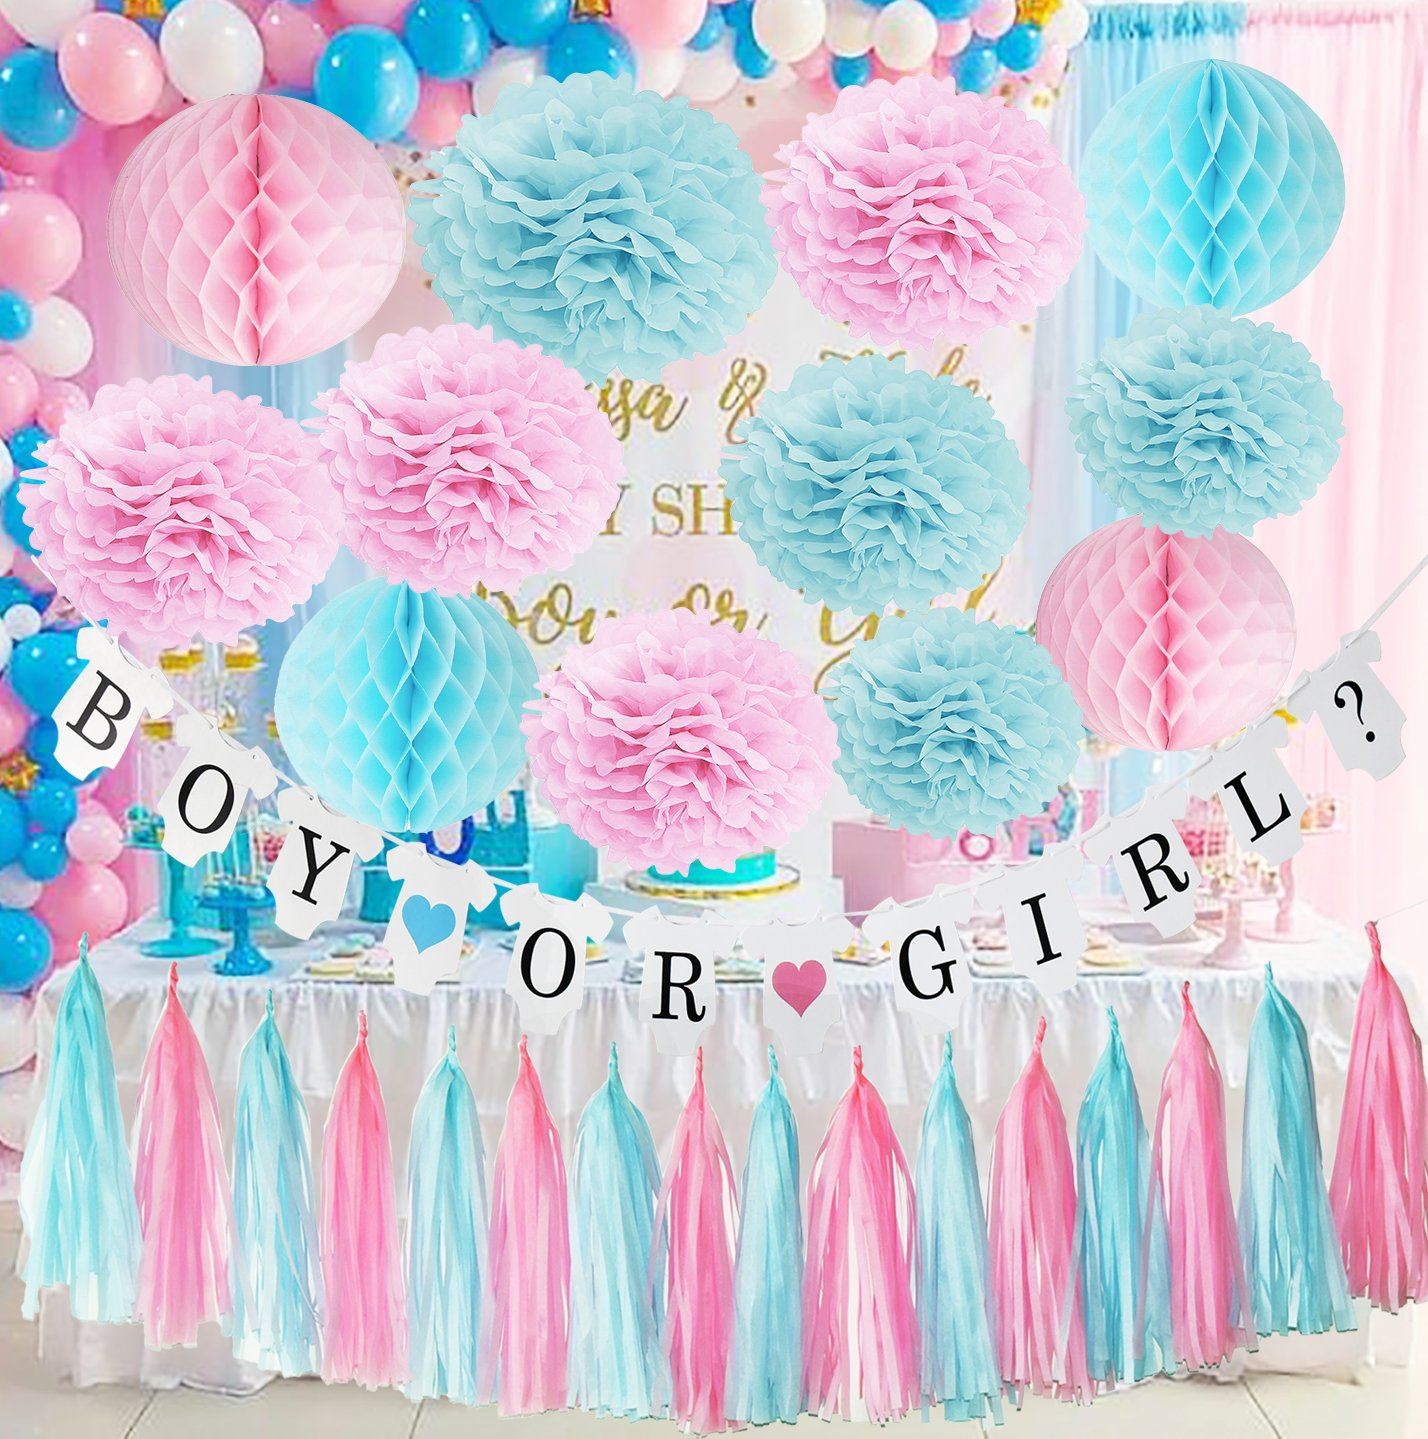 Gender Reveal Party Supplies Boy Or Girl Banner Boy Or Girl Party Decorations Baby Shower Baby Shower Partynewborn Baby Celebration Pink And Blue